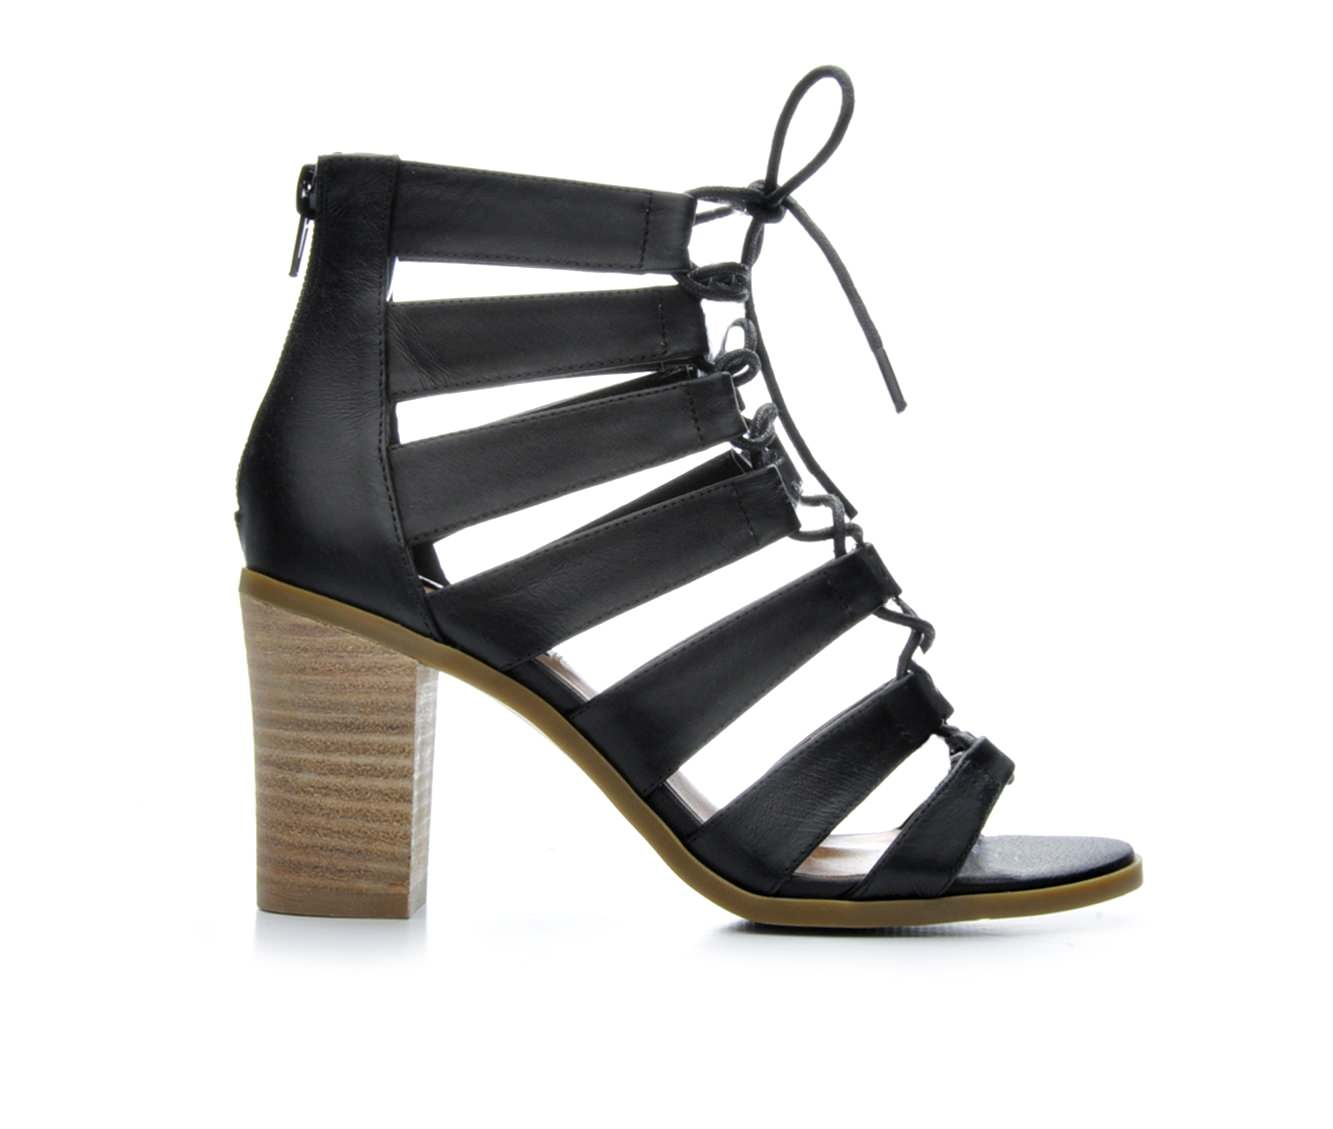 Buy products related to steve madden black boot products and see what customers say about steve madden black boot products on drinforftalpa.ml FREE DELIVERY possible on eligible purchases.